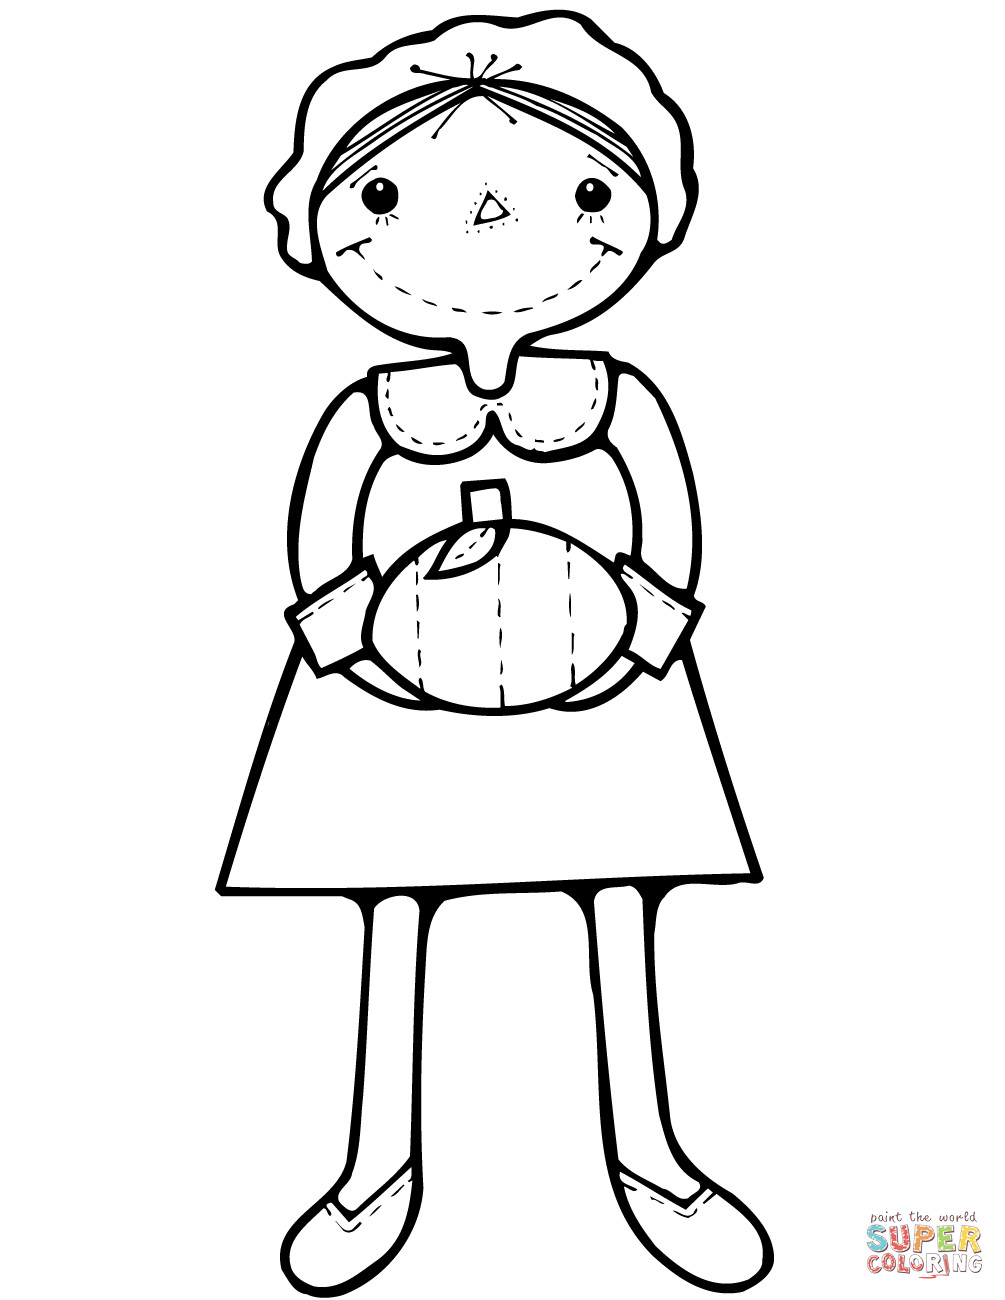 Thanksgiving Pilgrim Girl Coloring Pages  Cartoon Pilgrim Girl with Pumpkin coloring page